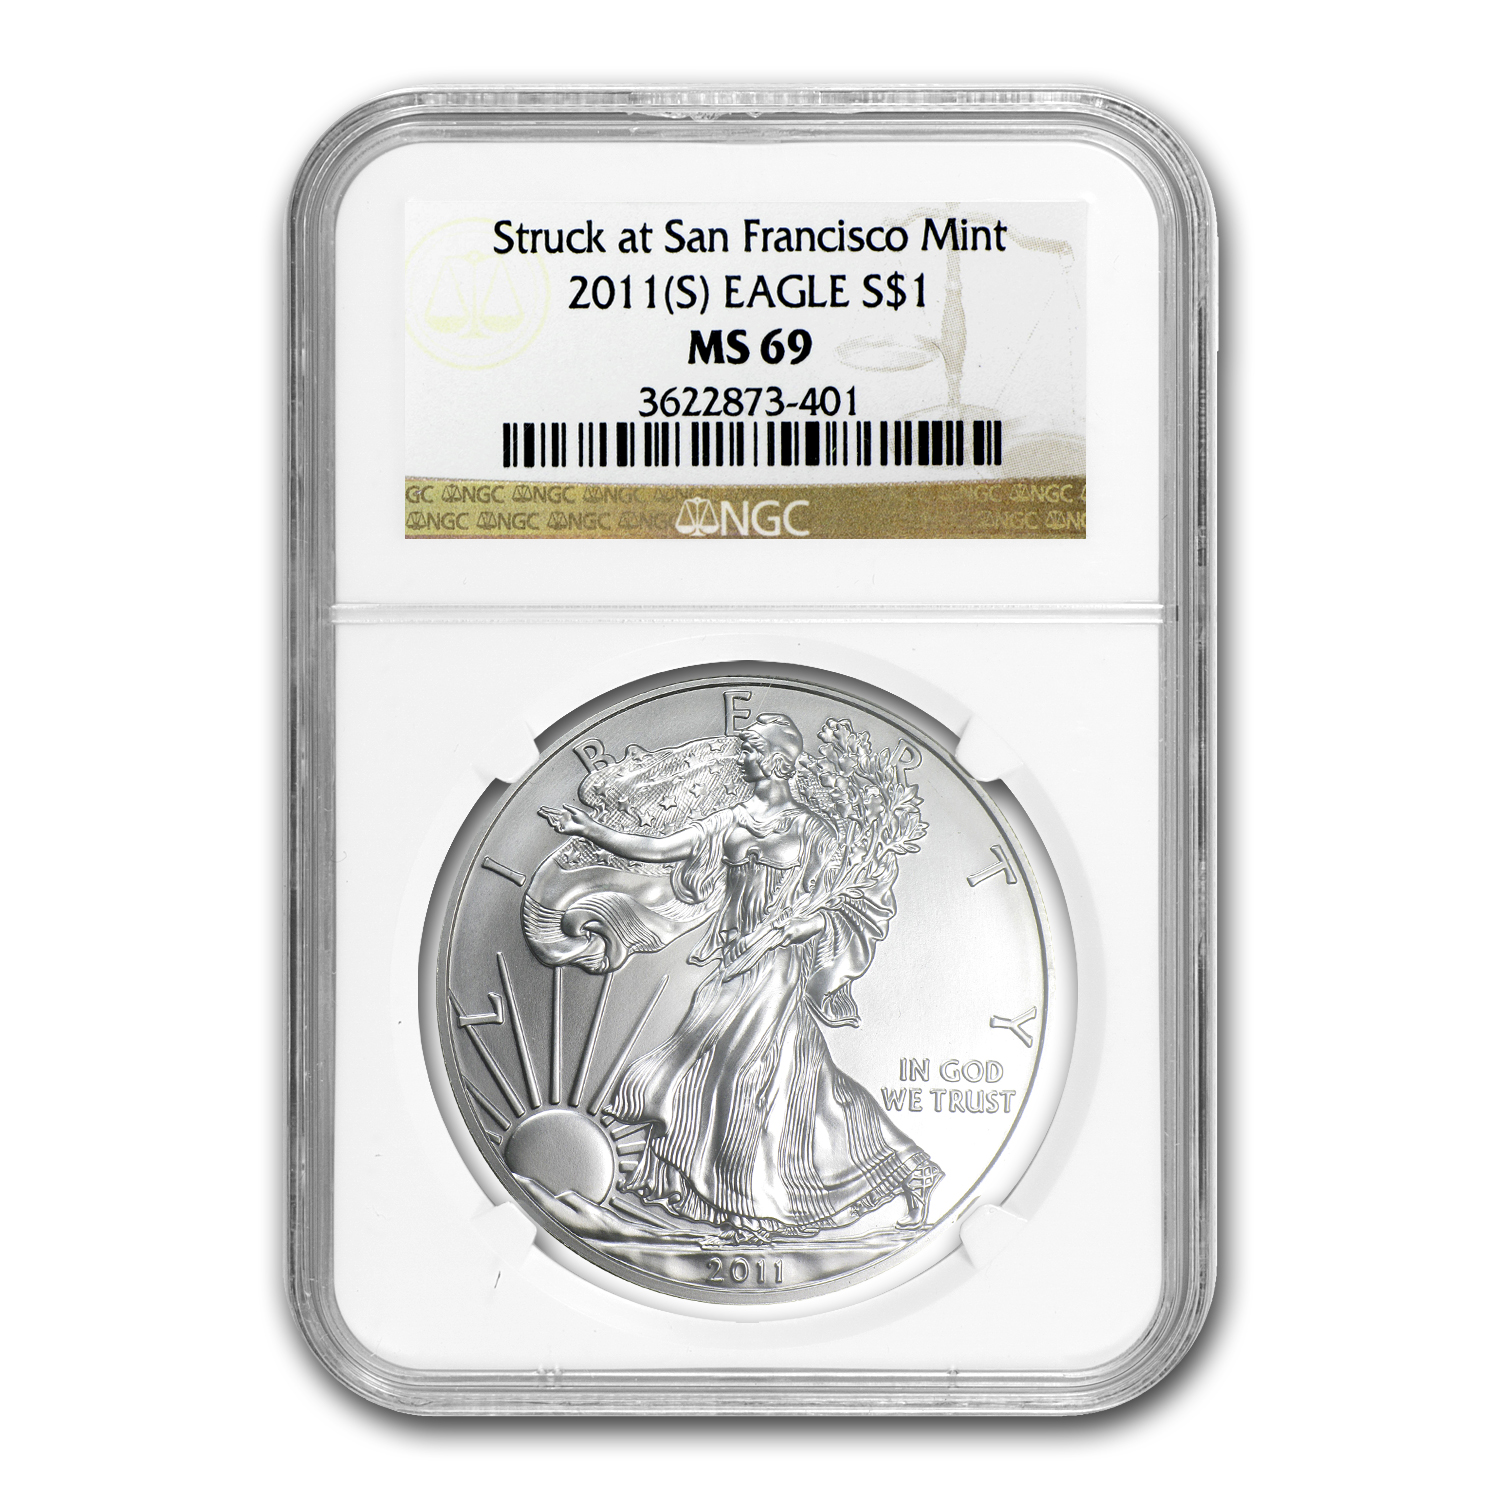 2011 (S) Silver Eagle MS-69 NGC (San Francisco Label)